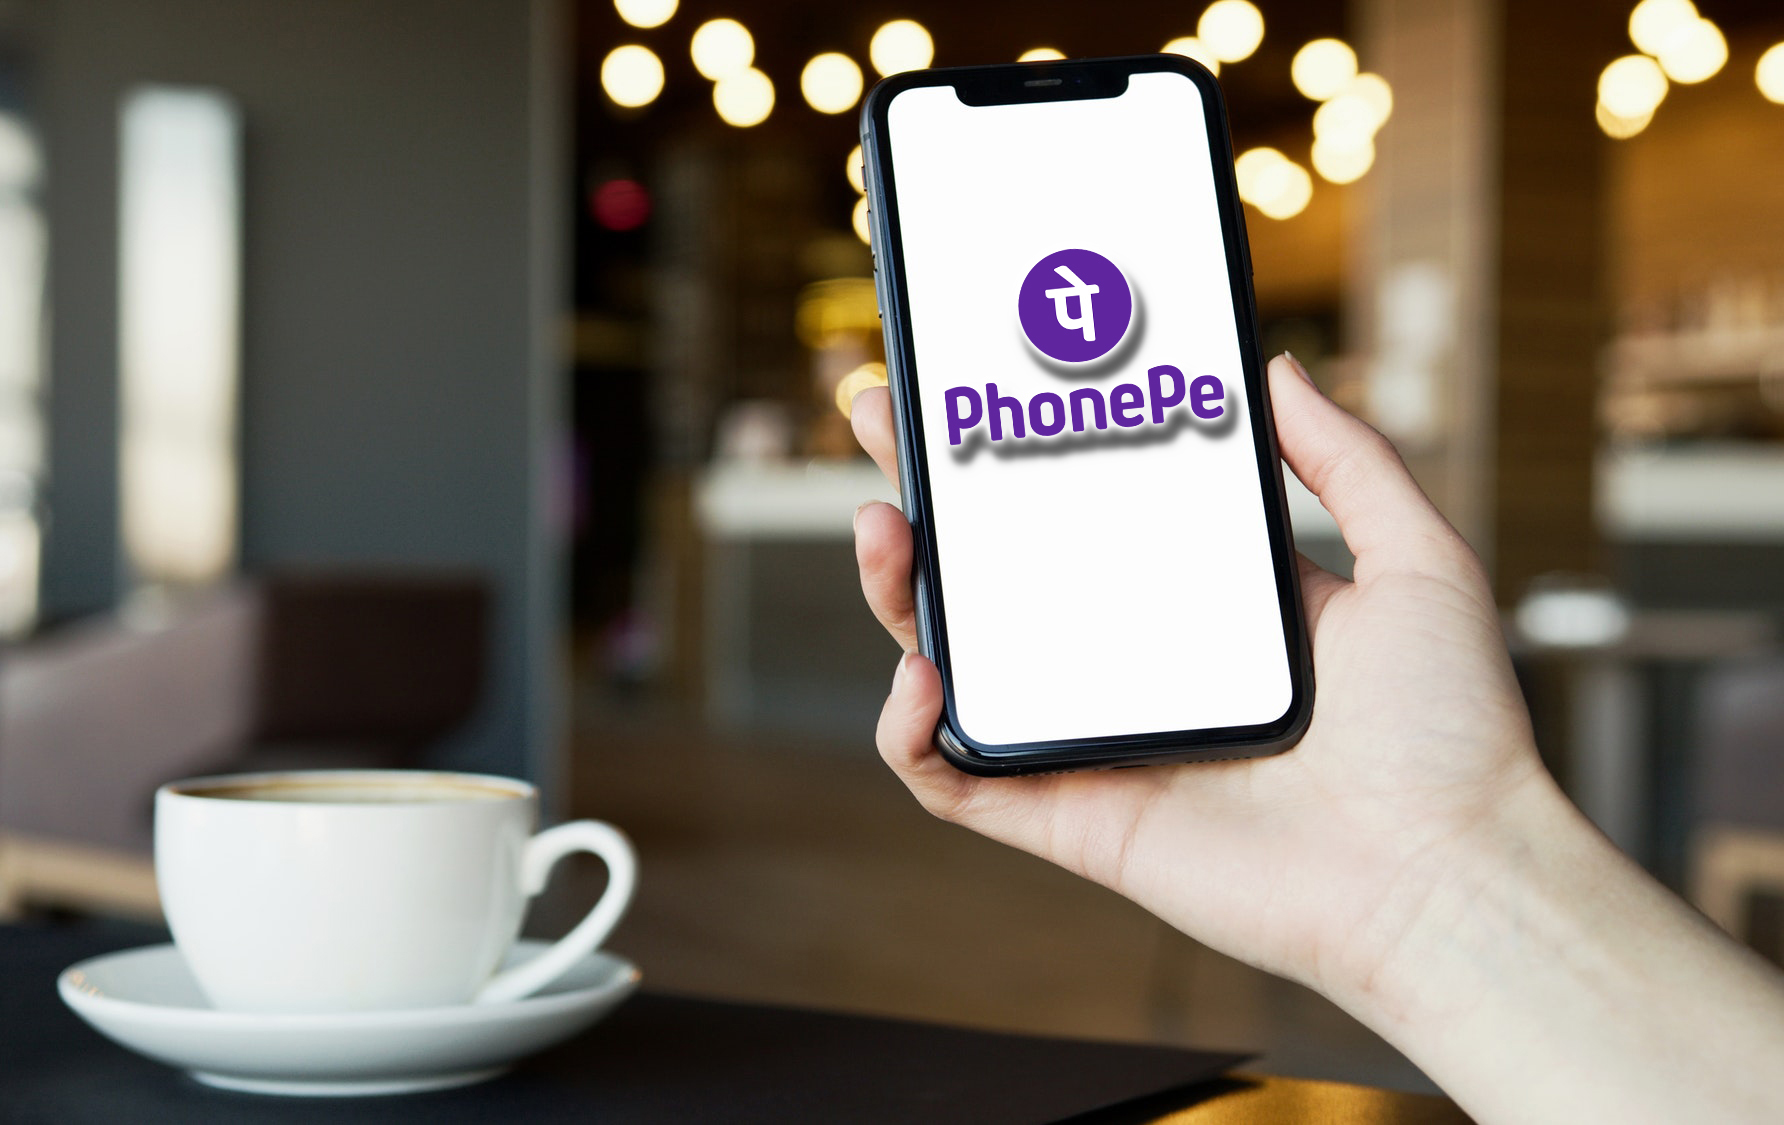 A person paying using PhonePe app at a Coffee Shop